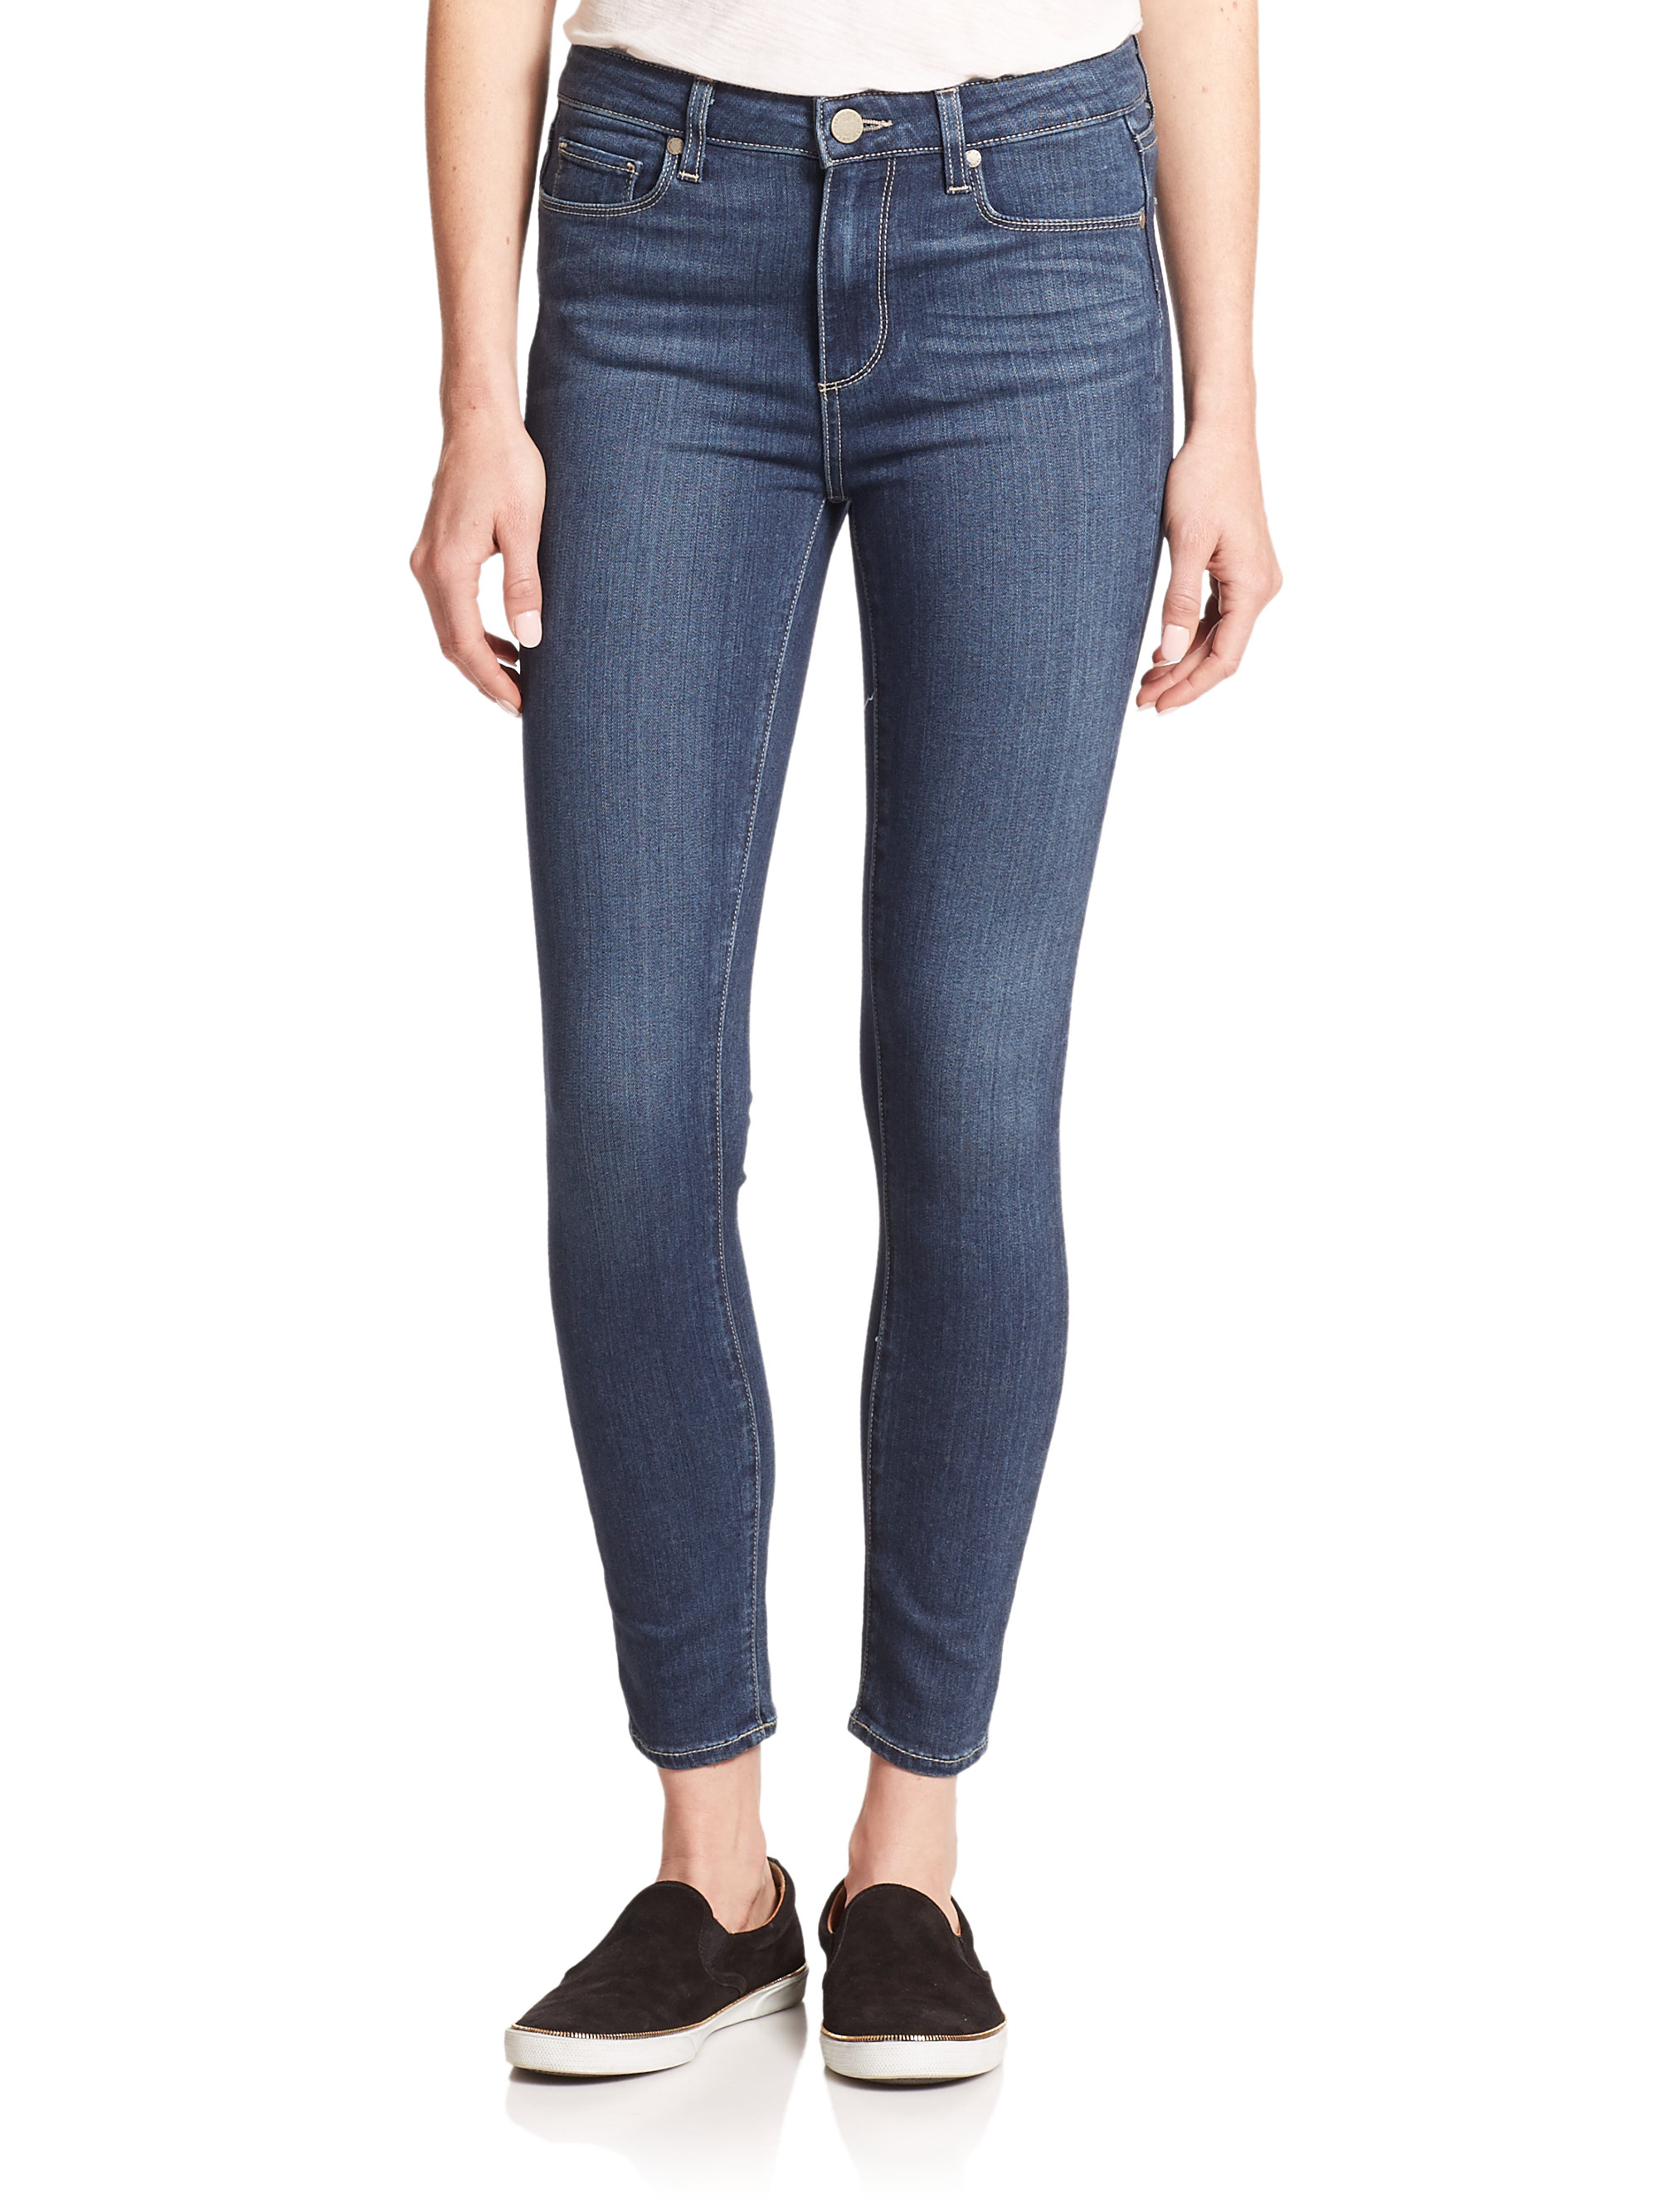 Shop Our Entire Selection of Jeans Including High Waisted Jean, Striped Jeans Distressed Jeans, Floral Jeans and Many More.